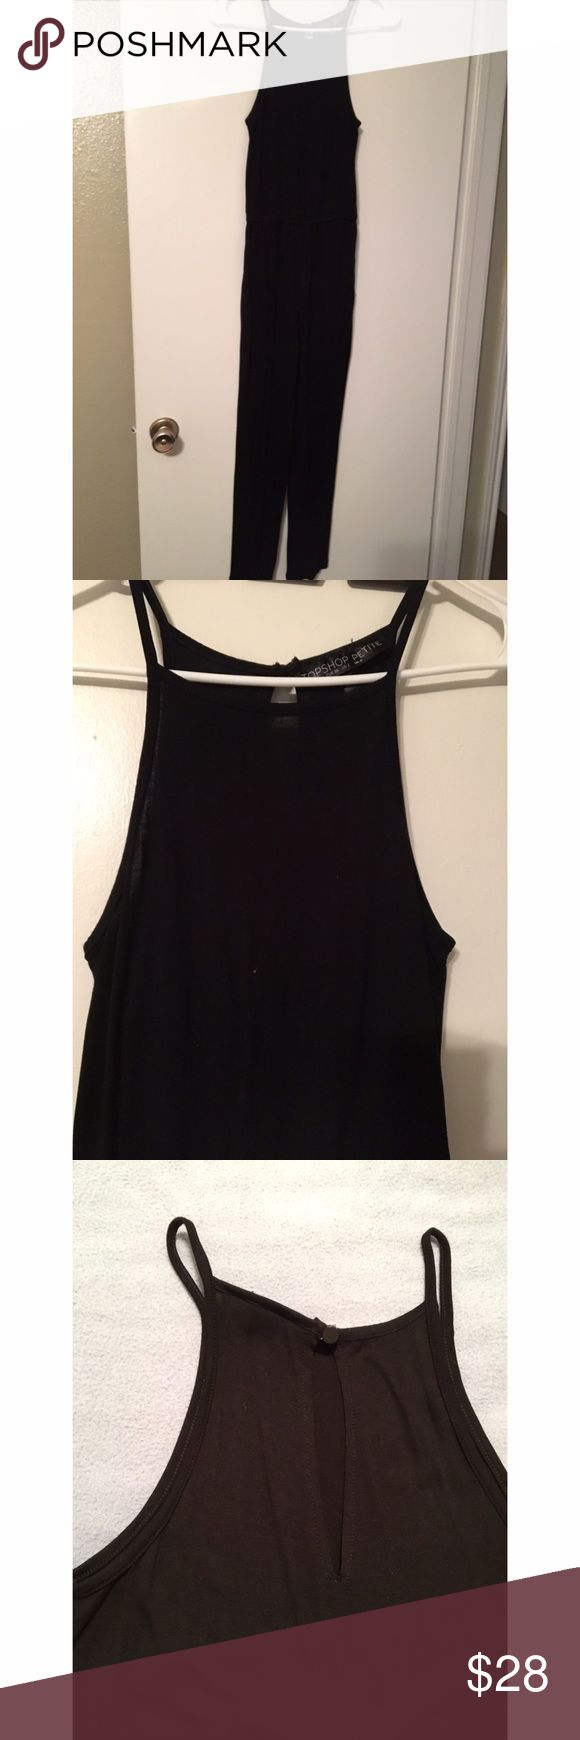 Topshop Petite Black high neck Jumpsuit US 2 Worn twice. In excellent condition. Elastic waist. Keyhole with button at back. Topshop PETITE Other